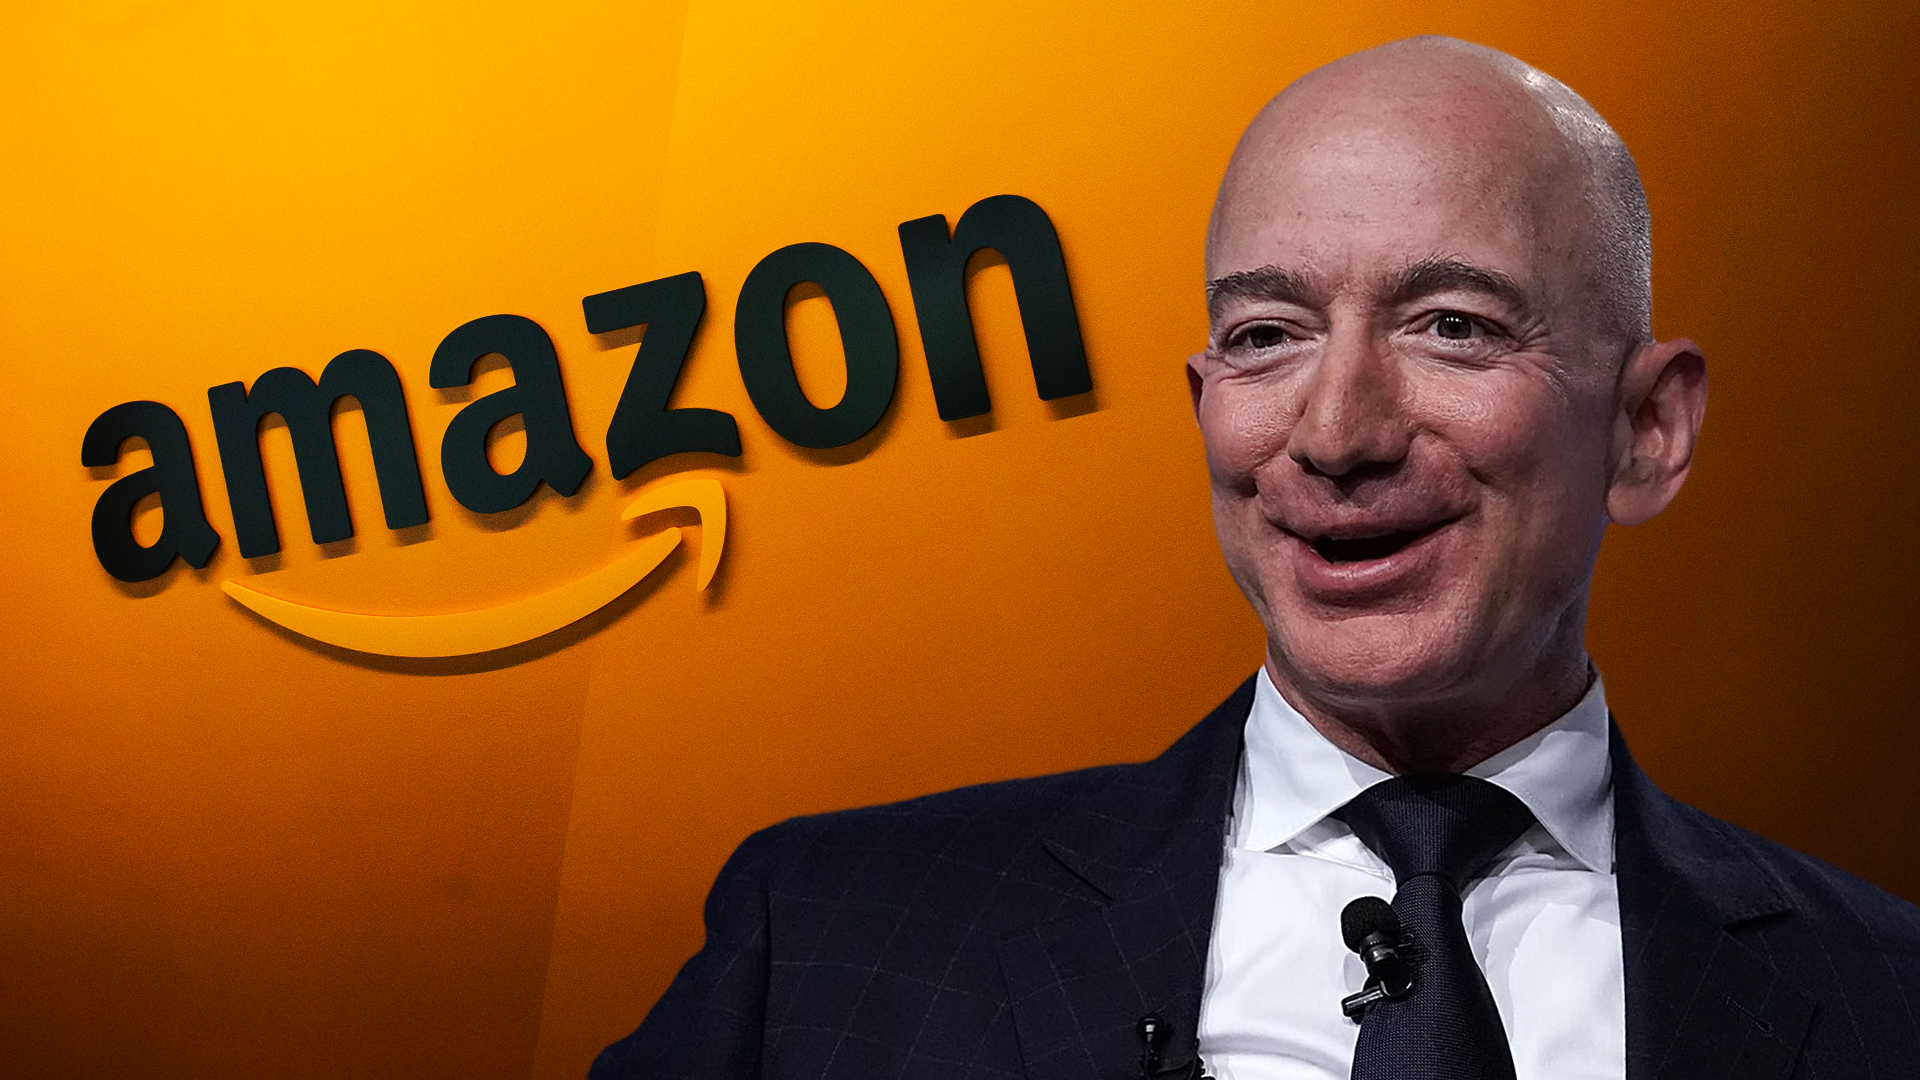 Amazon closes Souq, acquired for $580m, opens Middle East marketplace